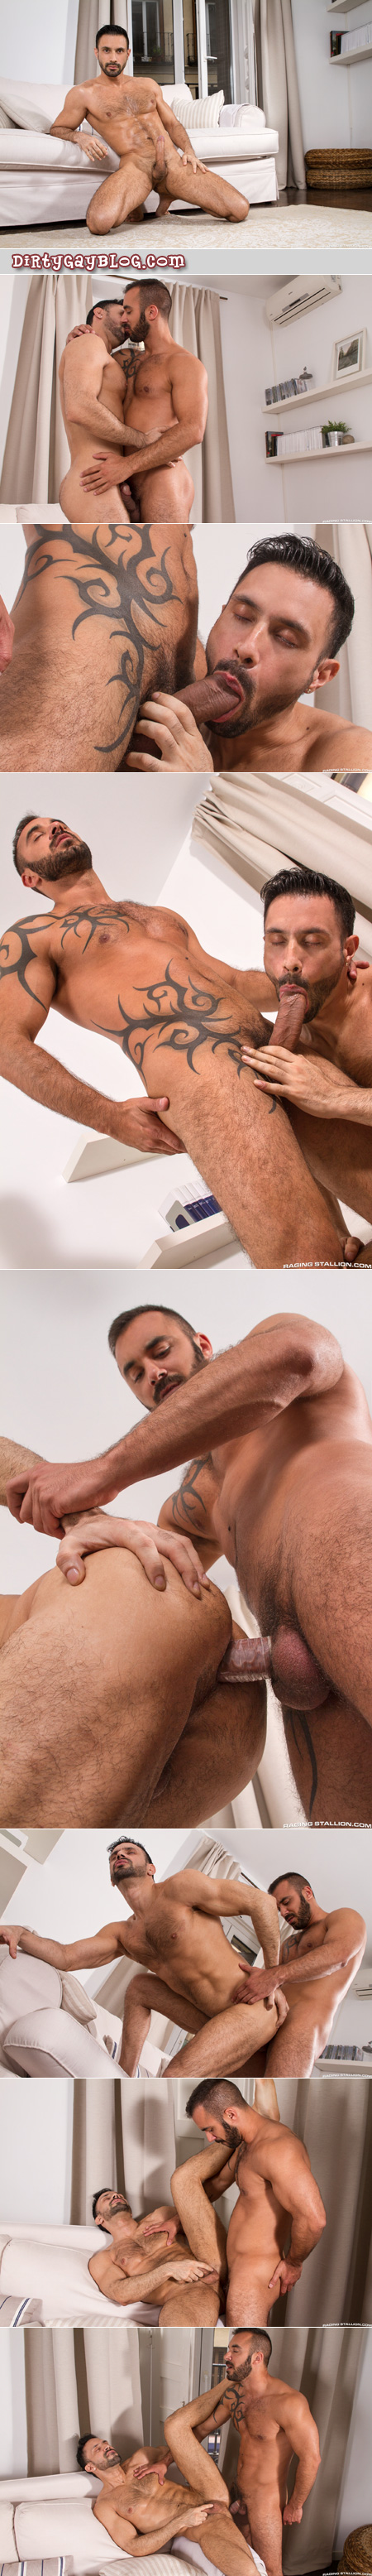 Hung Latino getting fucked by another muscular Spanish man.